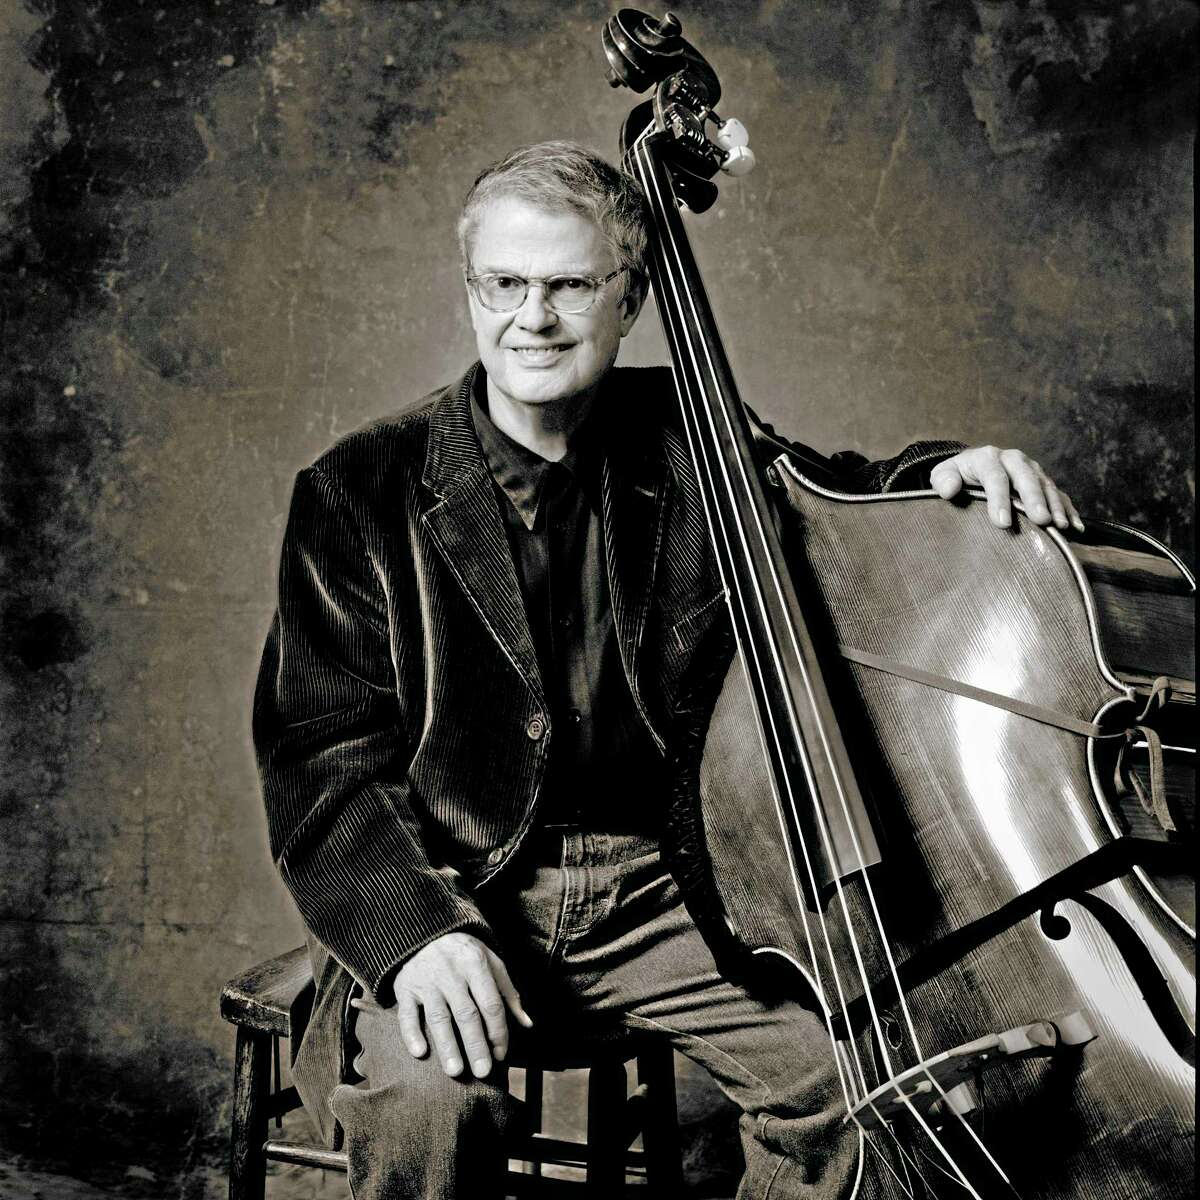 FILE - This undated file photo provided by Universal Music Group shows bassist Charlie Haden. Haden died Friday, July 11, 2014 in Los Angeles after a long illness. He was 76. (AP Photo/Universal Music Group)